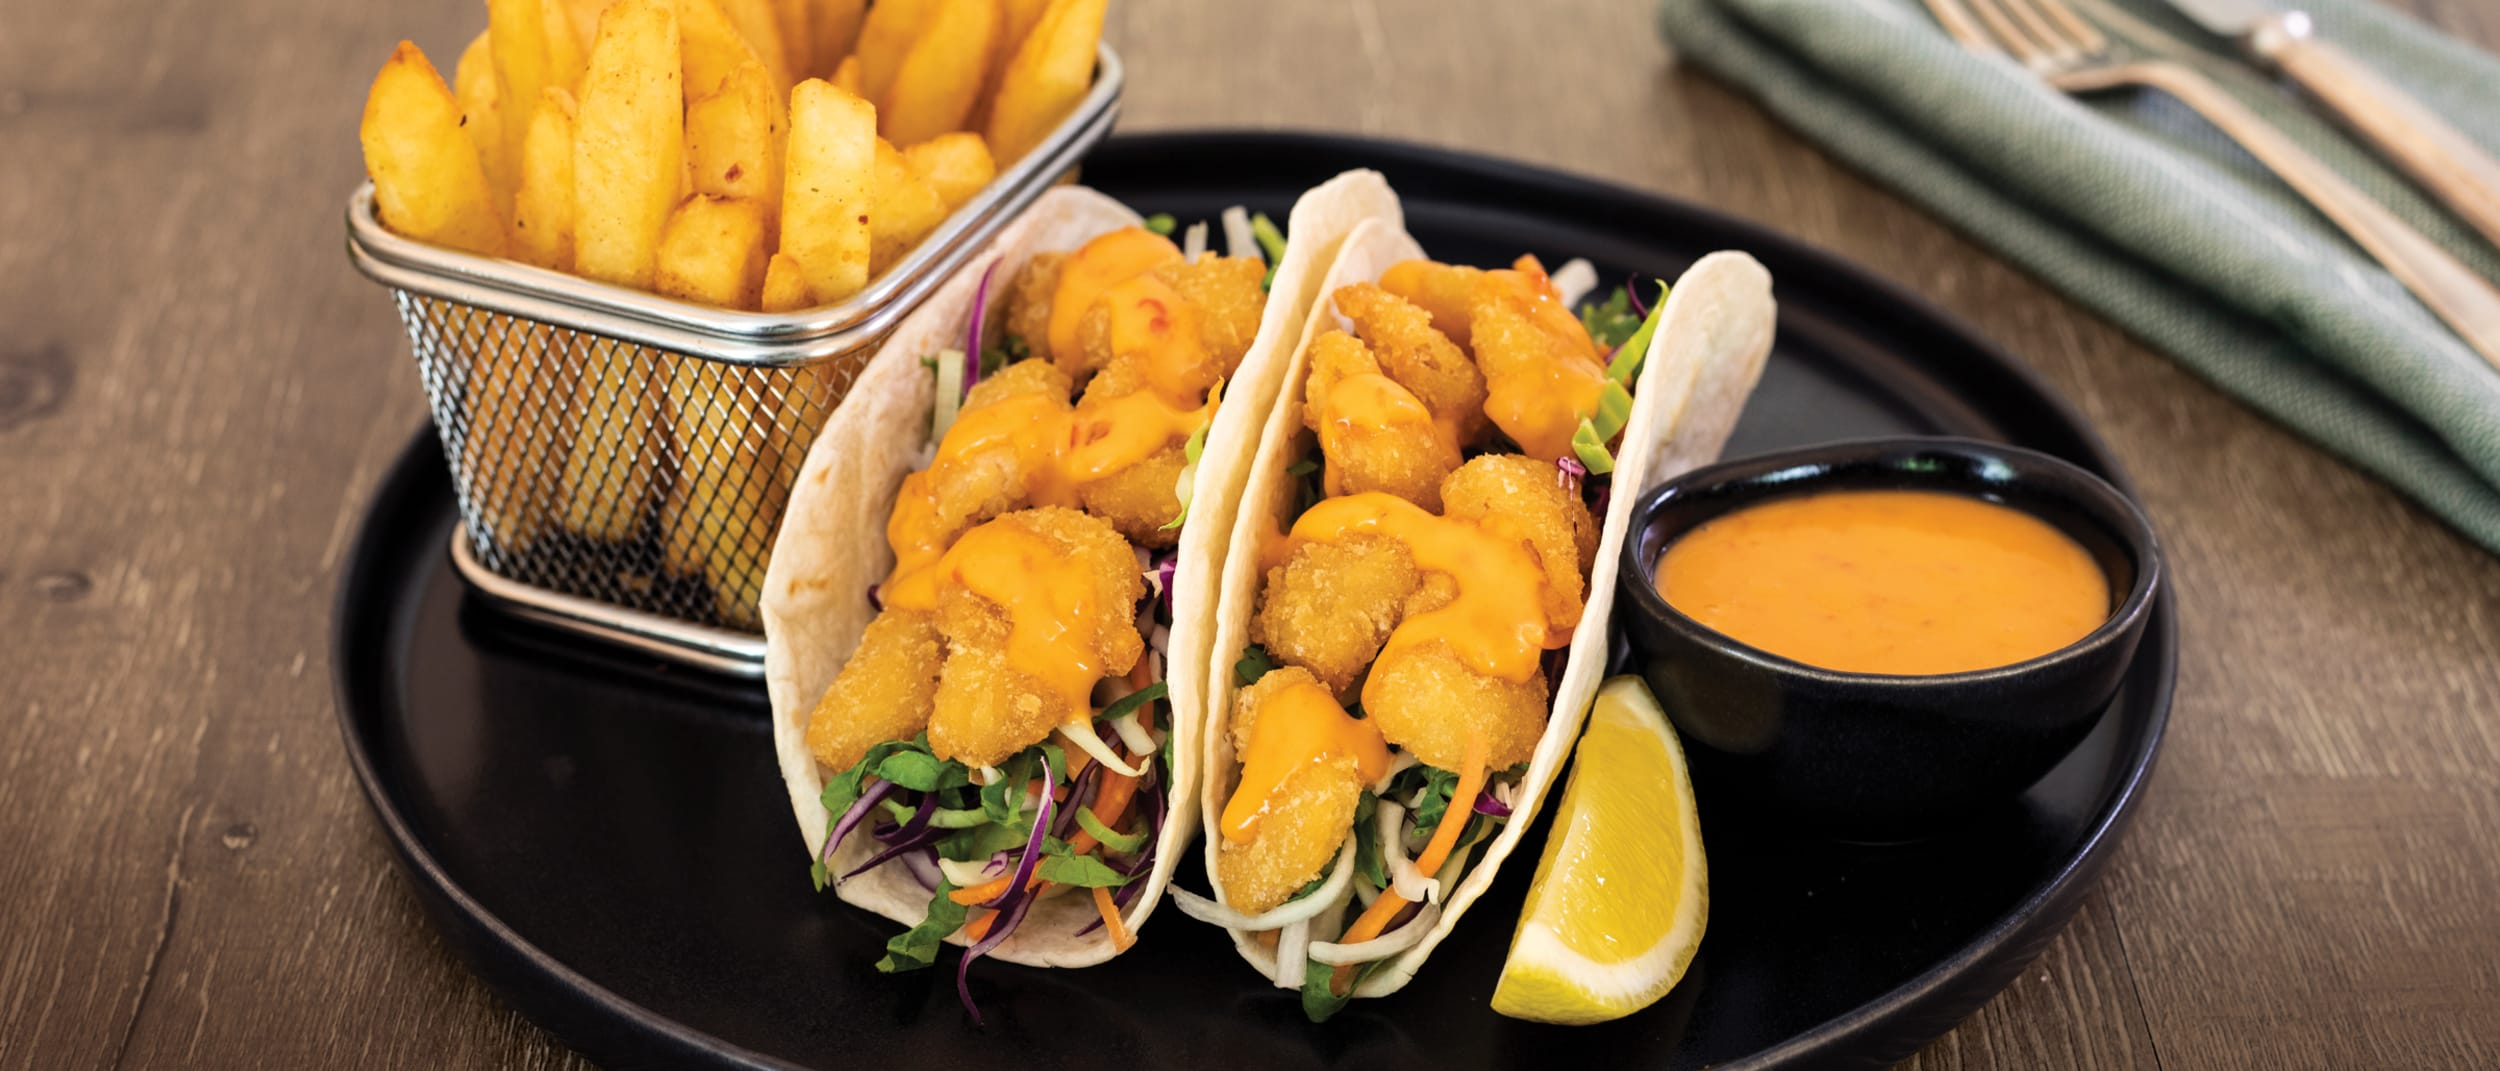 Popcorn shrimp soft shell tacos from Coffee Club